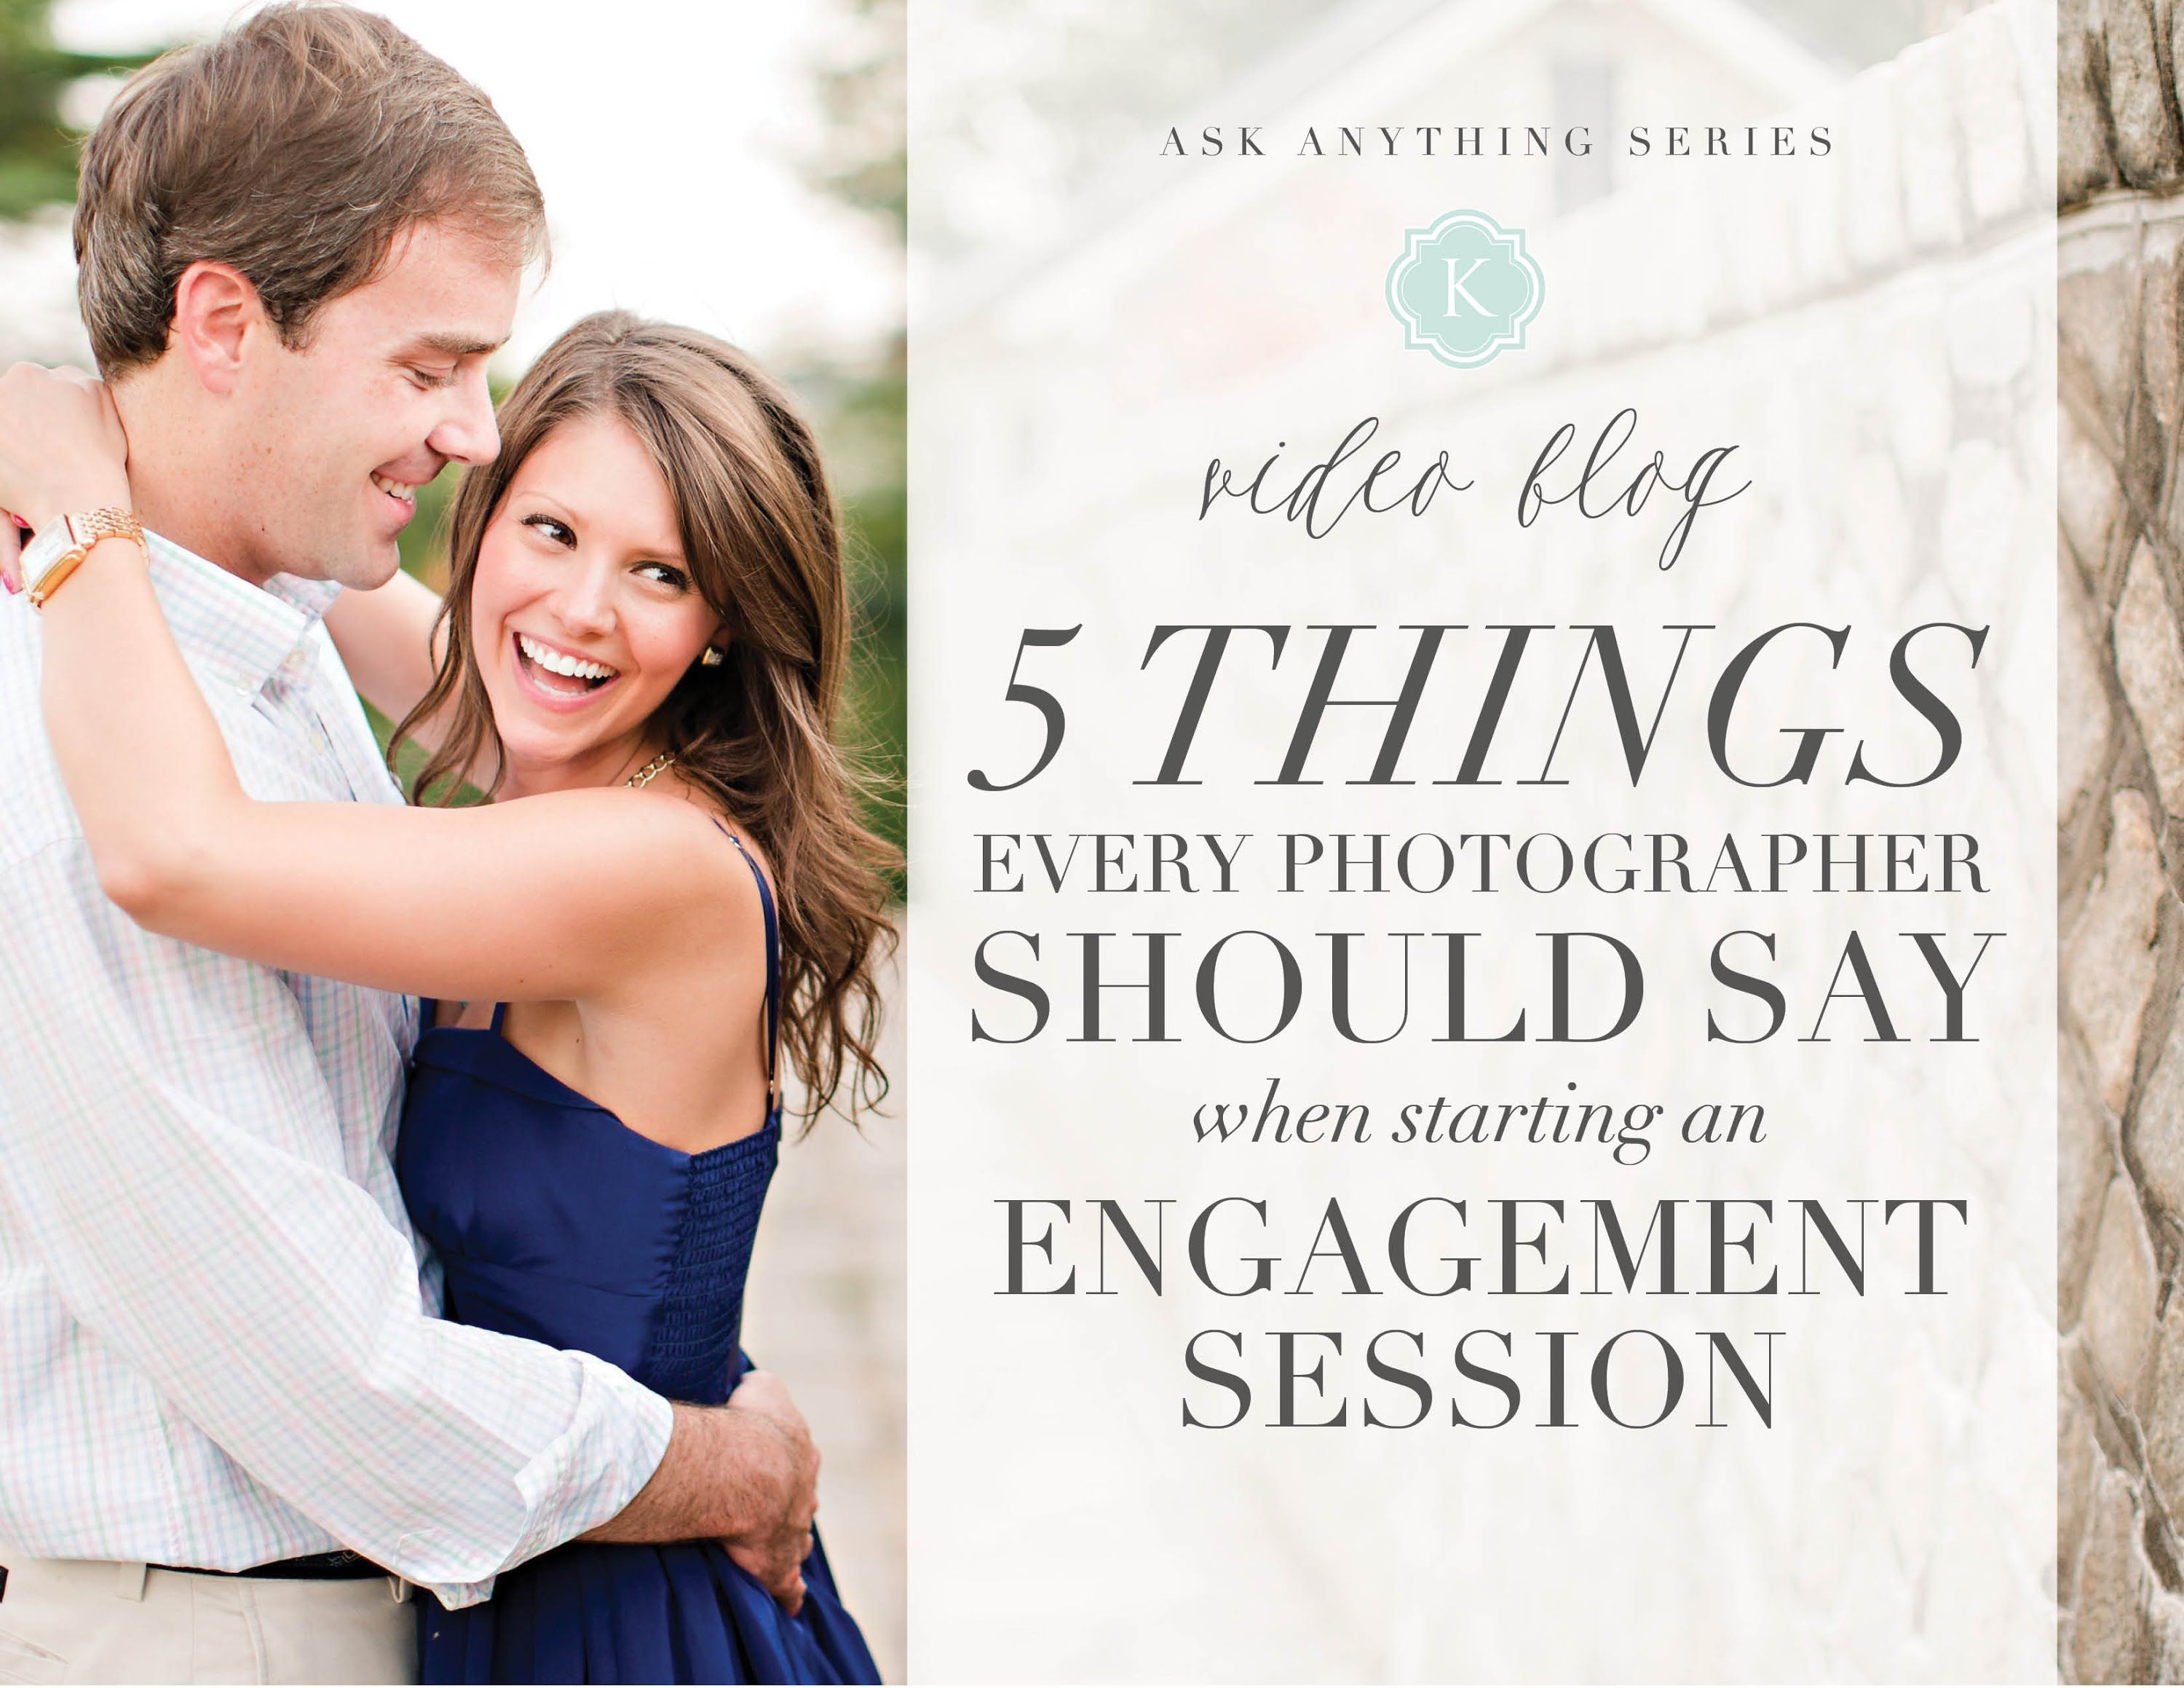 KJ Video Blog | 5 Things to Say at the Start of an Engagement Session